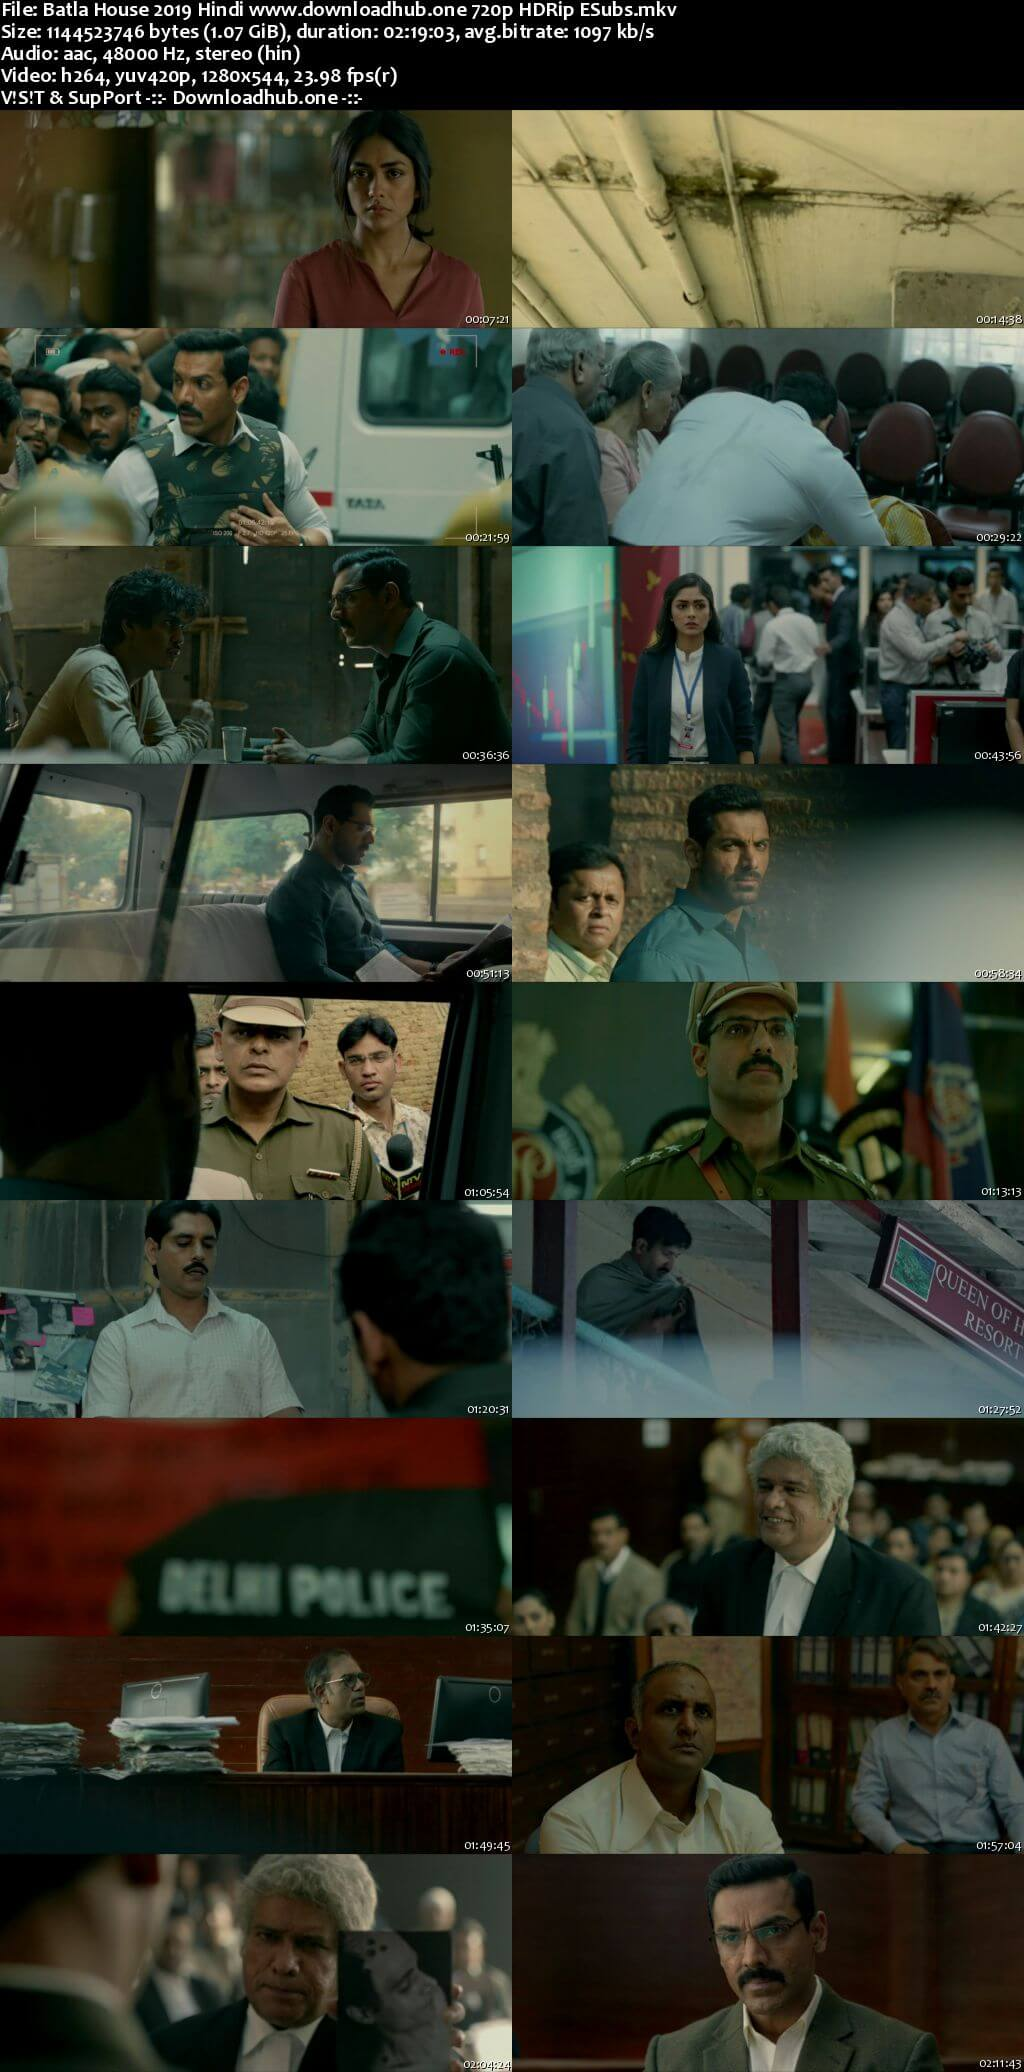 Batla House 2019 Hindi 720p HDRip ESubs